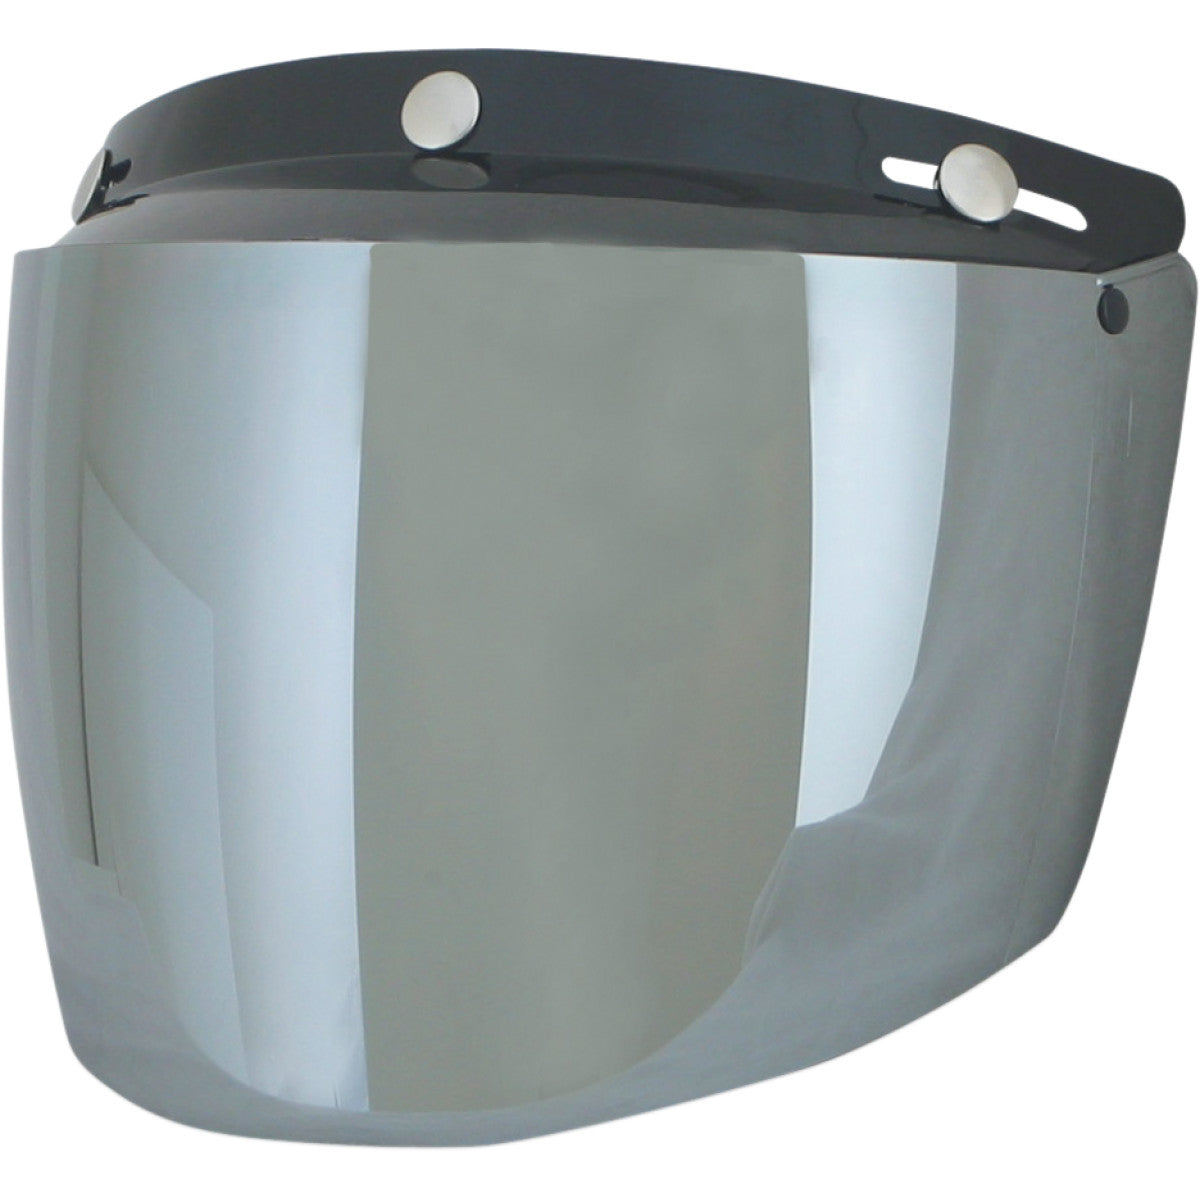 AFX HELMET THREE- AND FIVE-SNAP SHIELDS